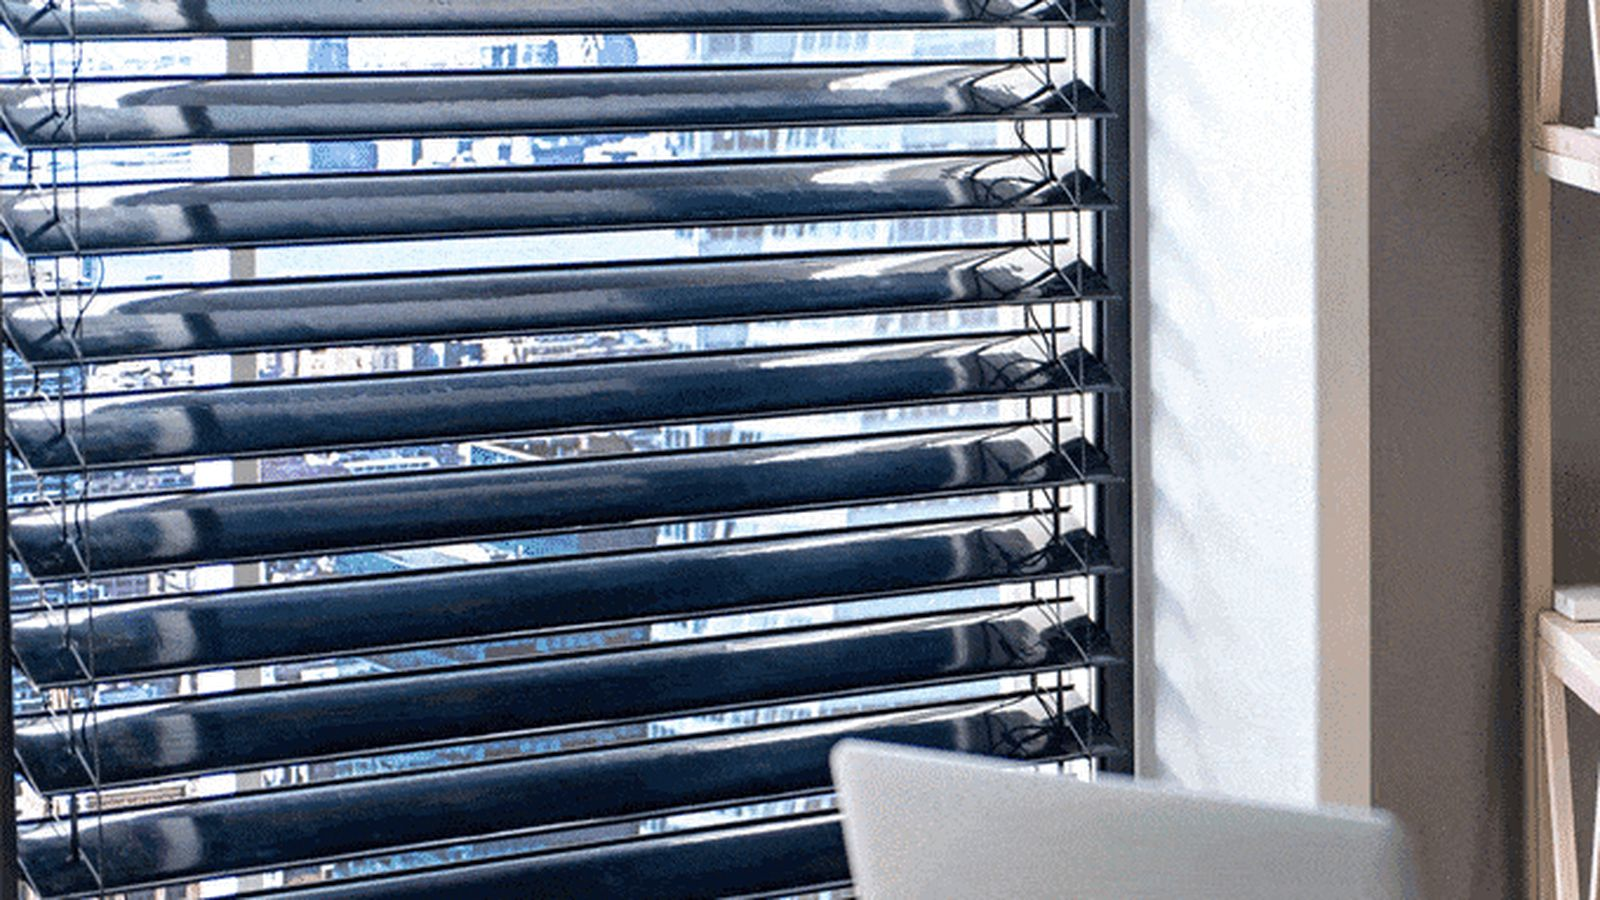 These solar panel window blinds generate energy while - Affordable interior design seattle ...